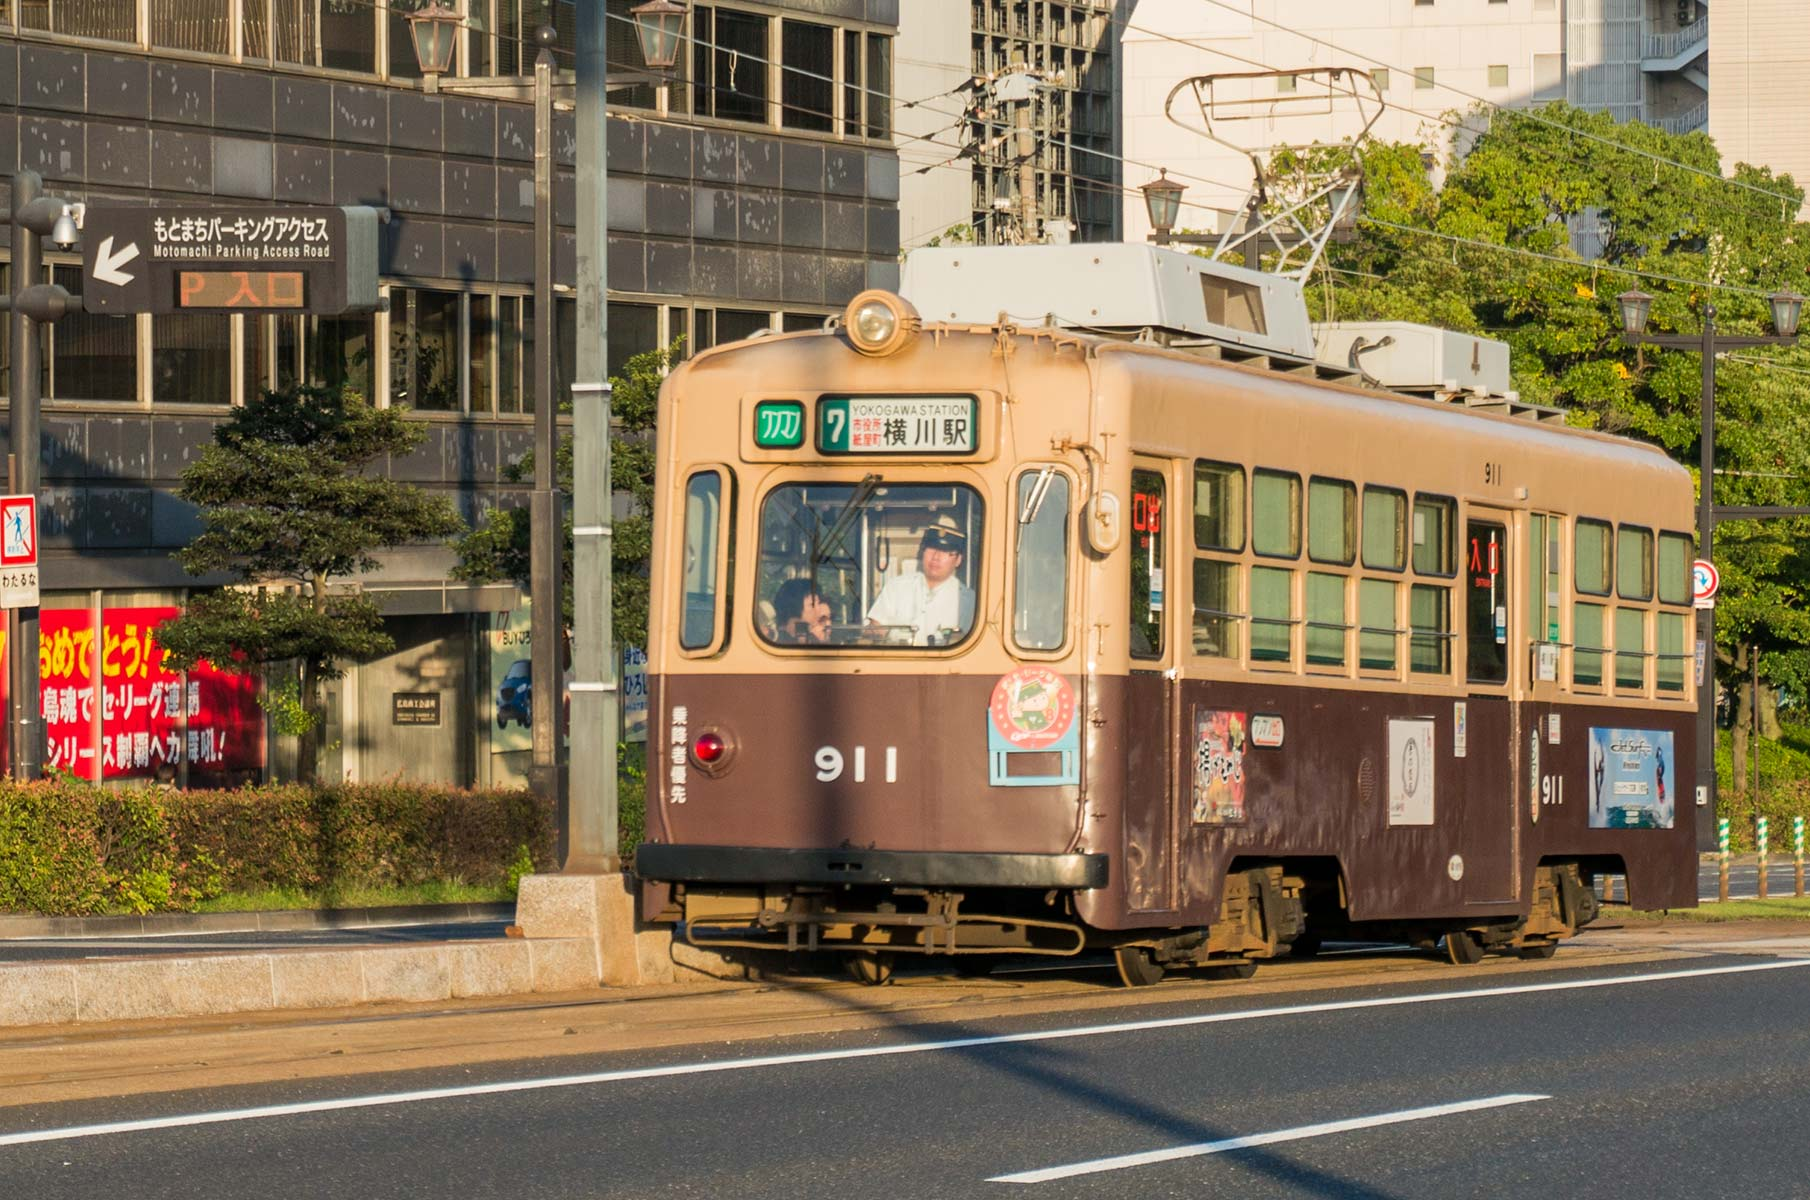 Tram in Hiroshima, Japan